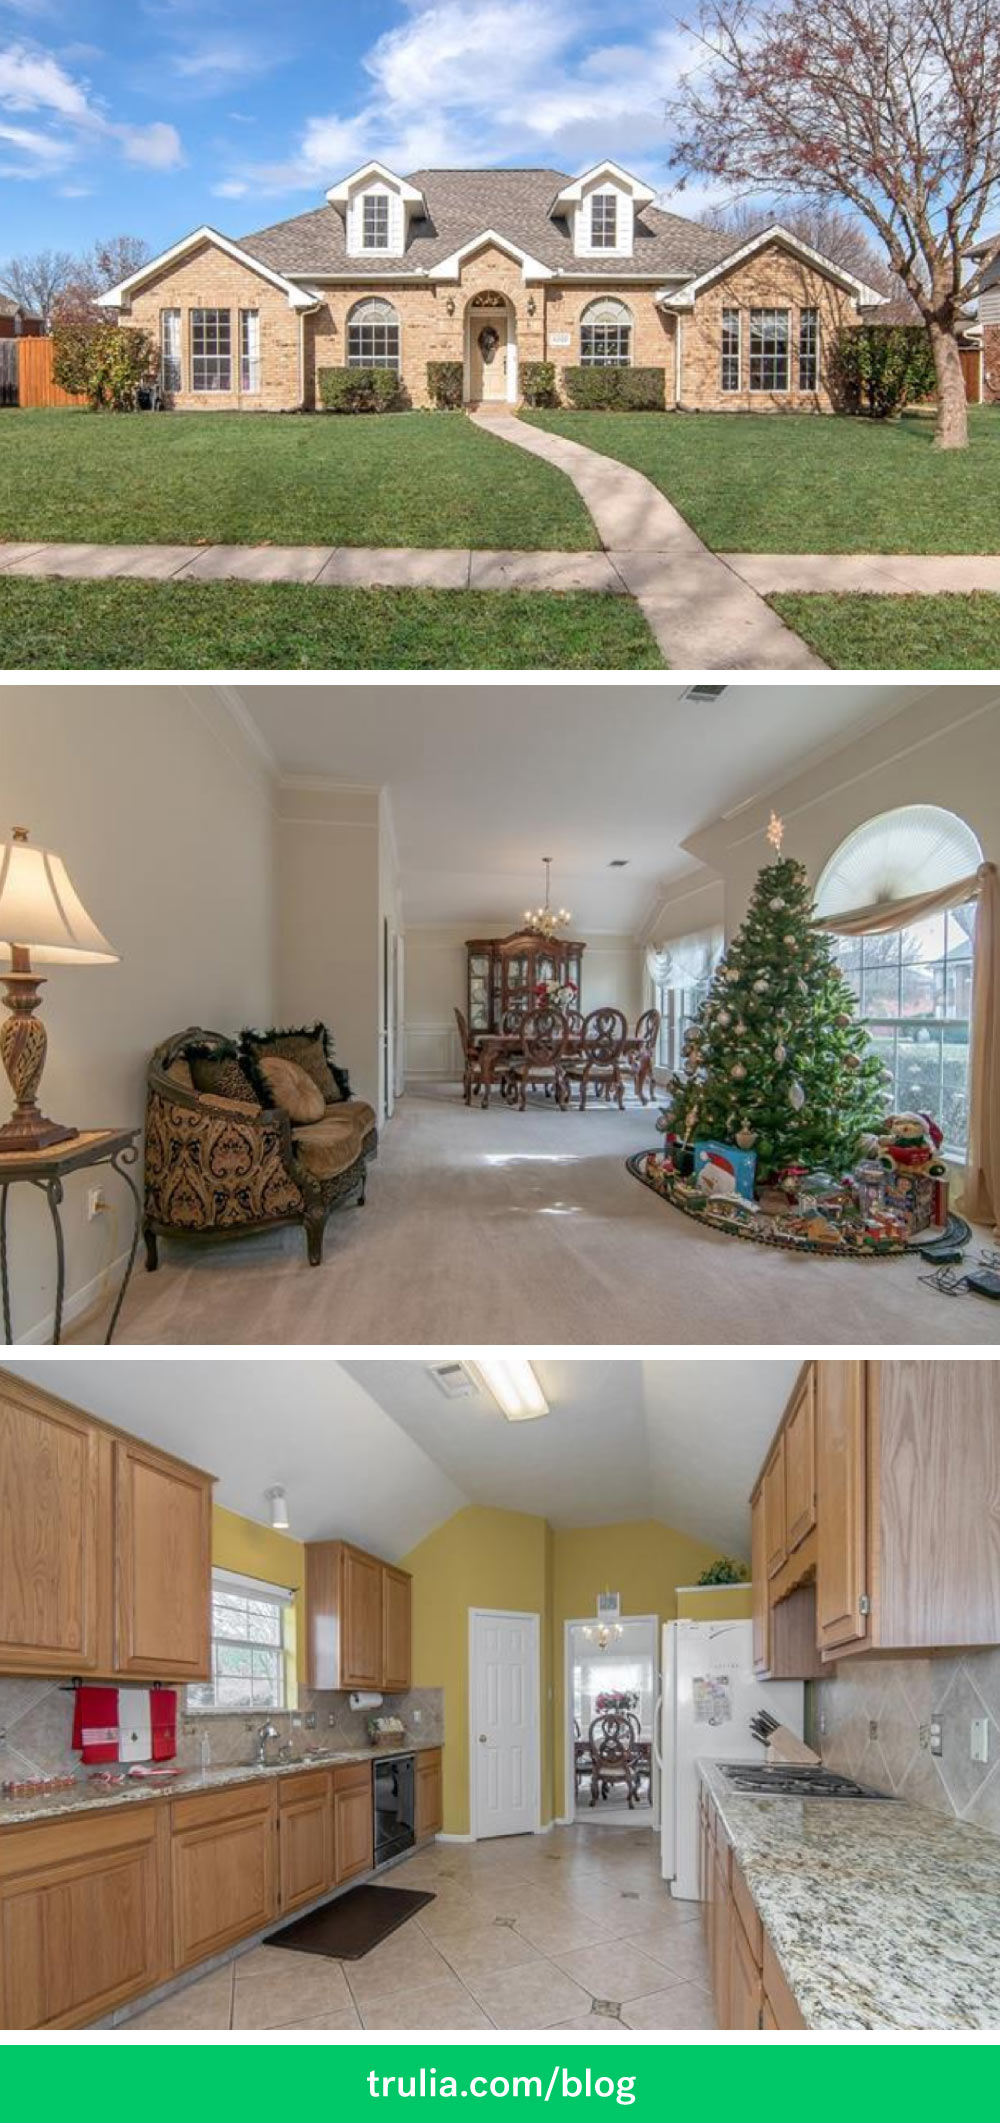 New Homes For Sale West Plano Tx